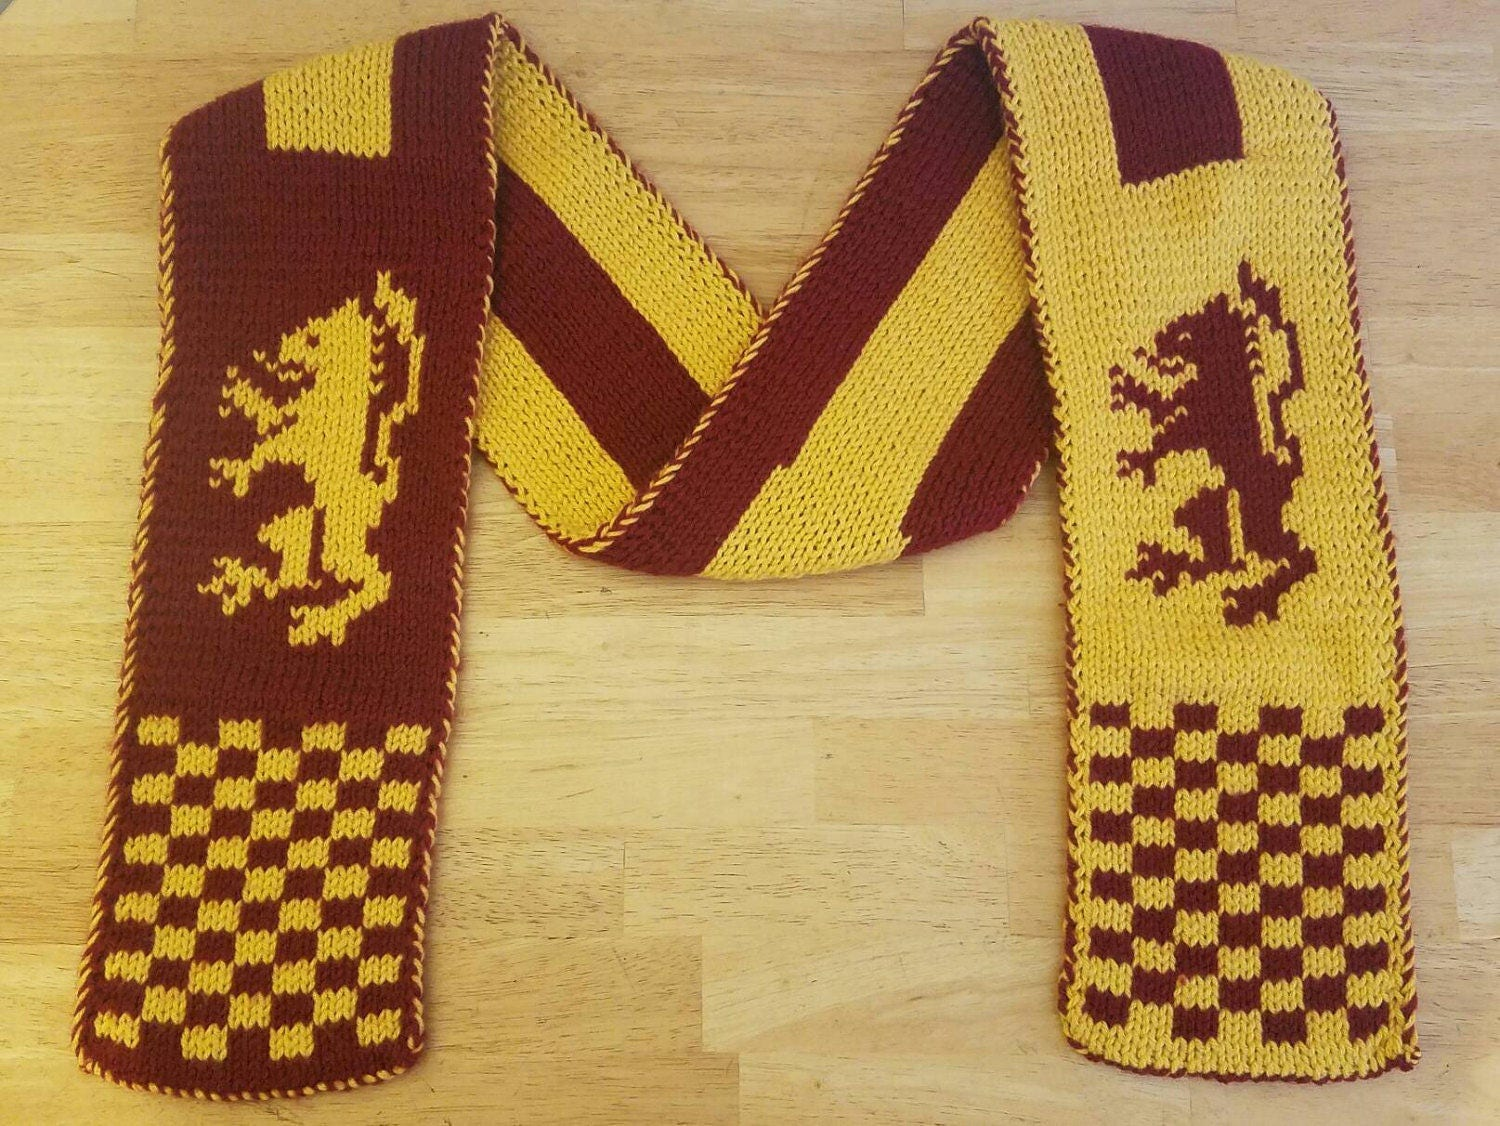 Gryffindor Scarf Double Knit with Harry Potter Hogwarts House Lion ...